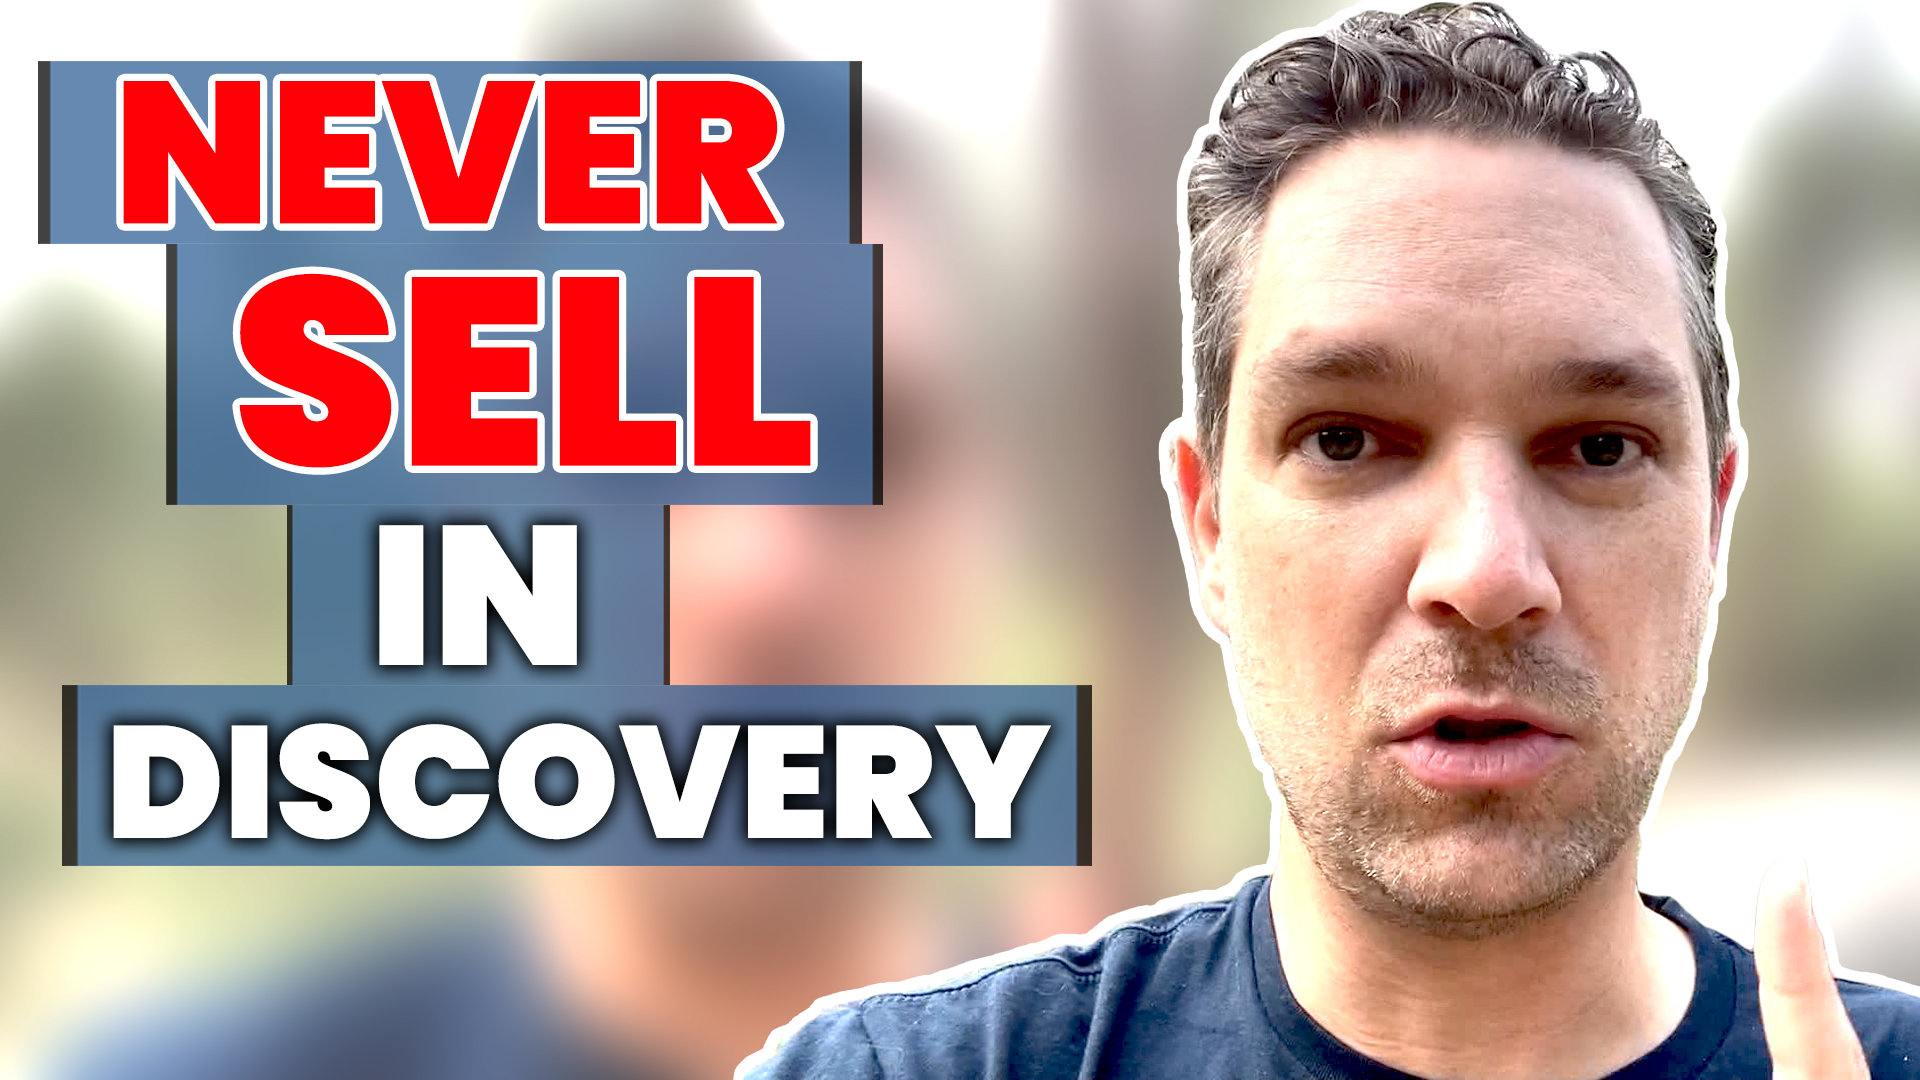 Never Sell During Discovery